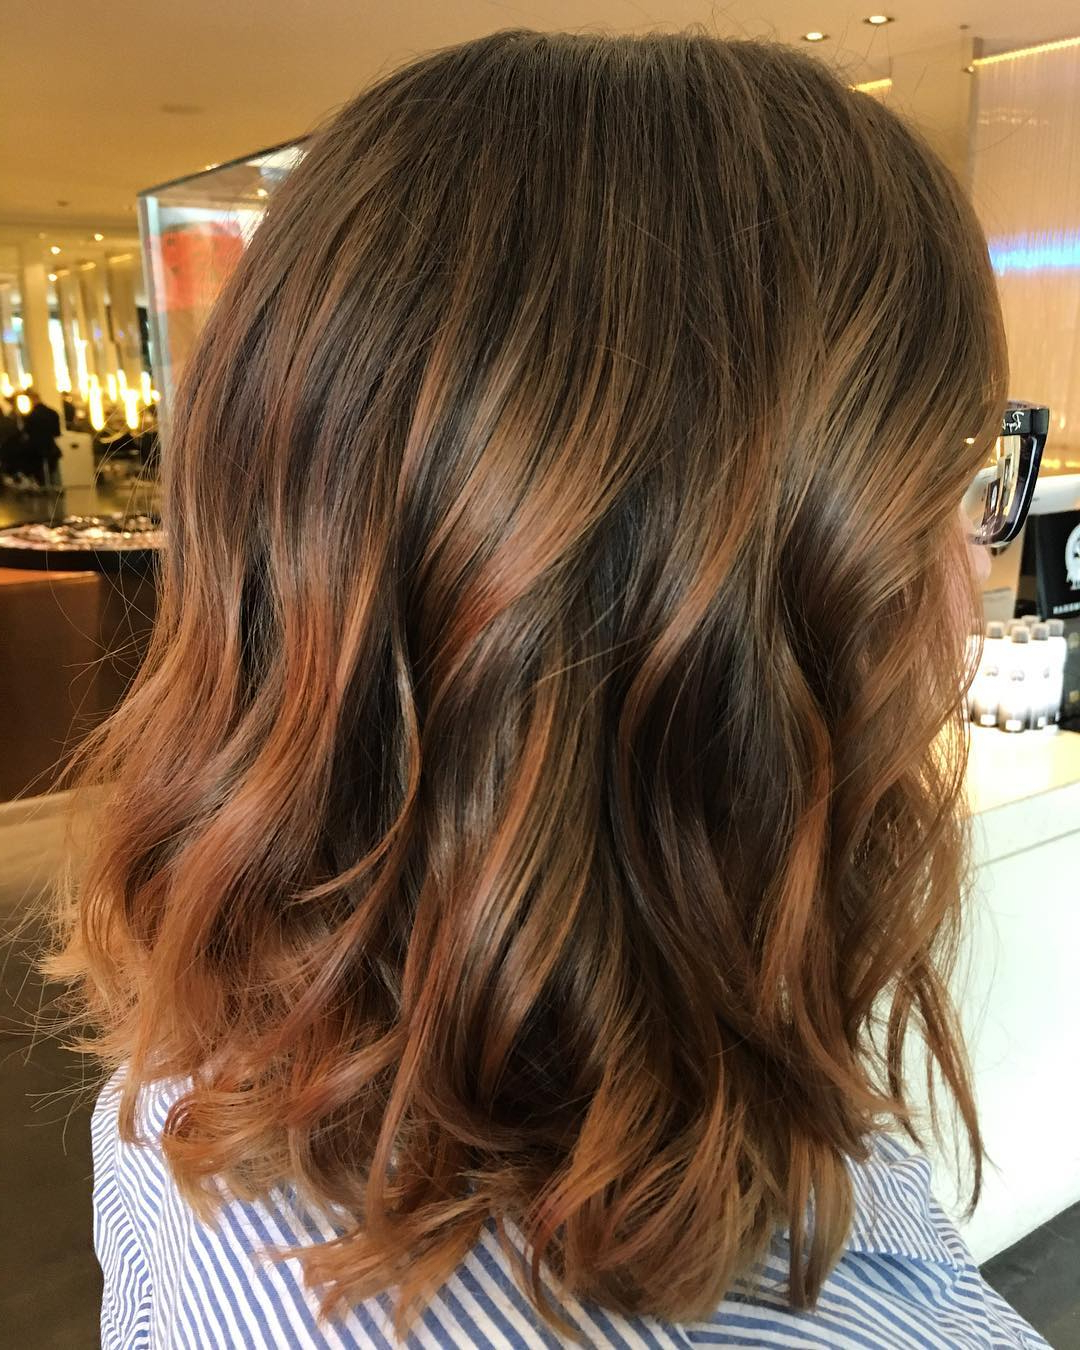 Widely Used Medium Haircuts Styles With Layers Inside 25 Exciting Medium Length Layered Haircuts – Popular Haircuts (View 8 of 20)